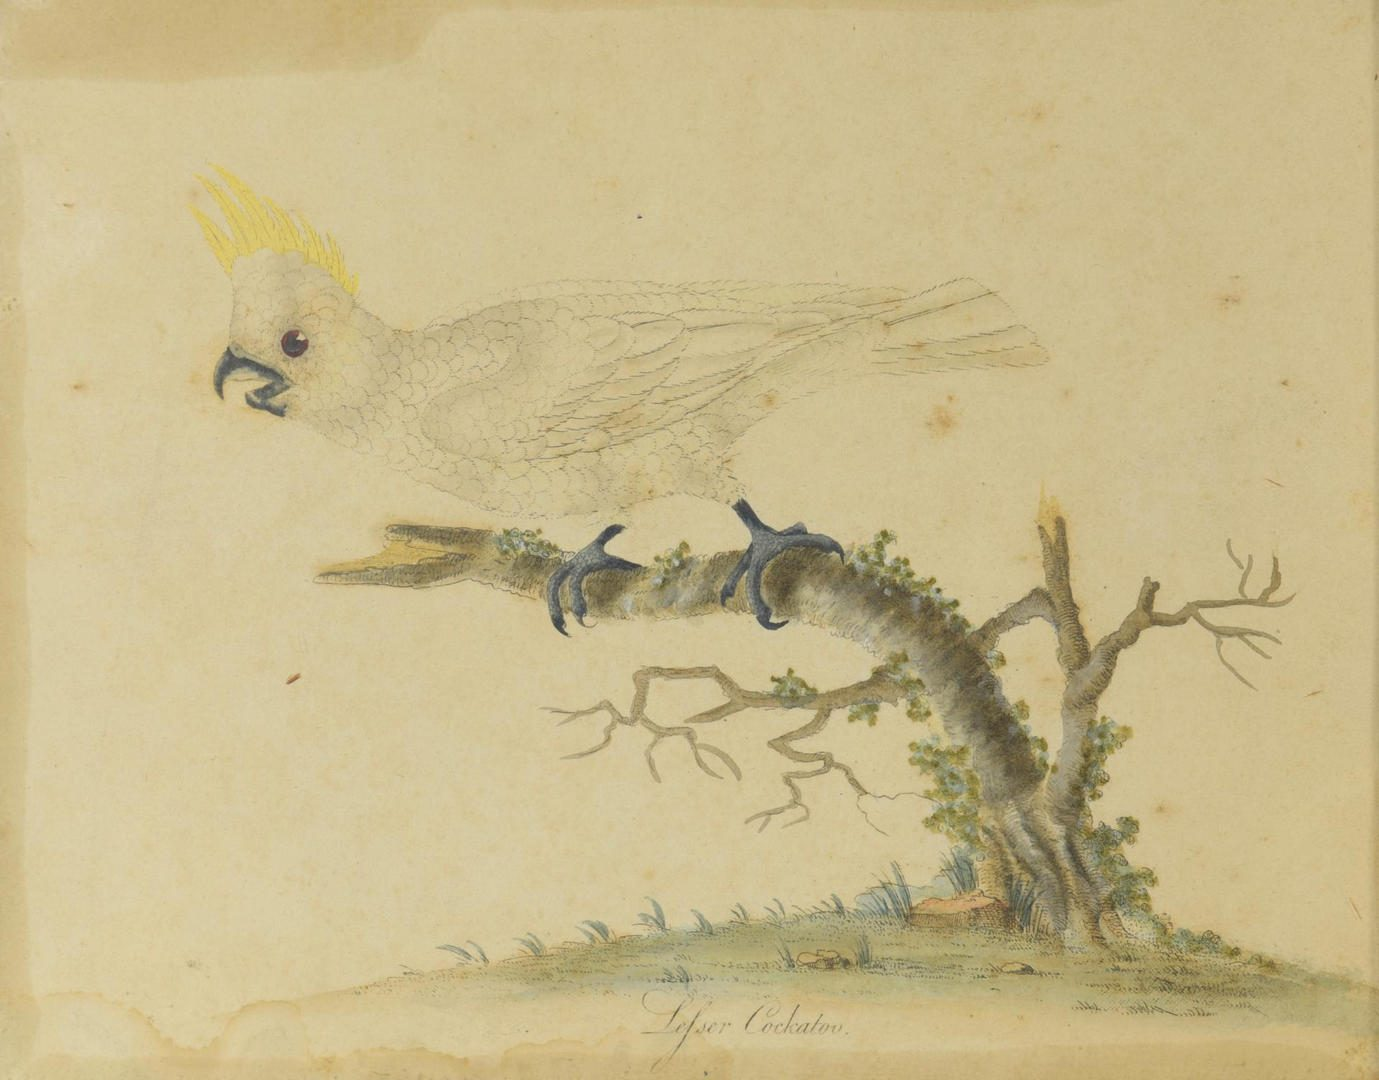 Lot 100: 2 Art Images of Birds, O/C and Engraving